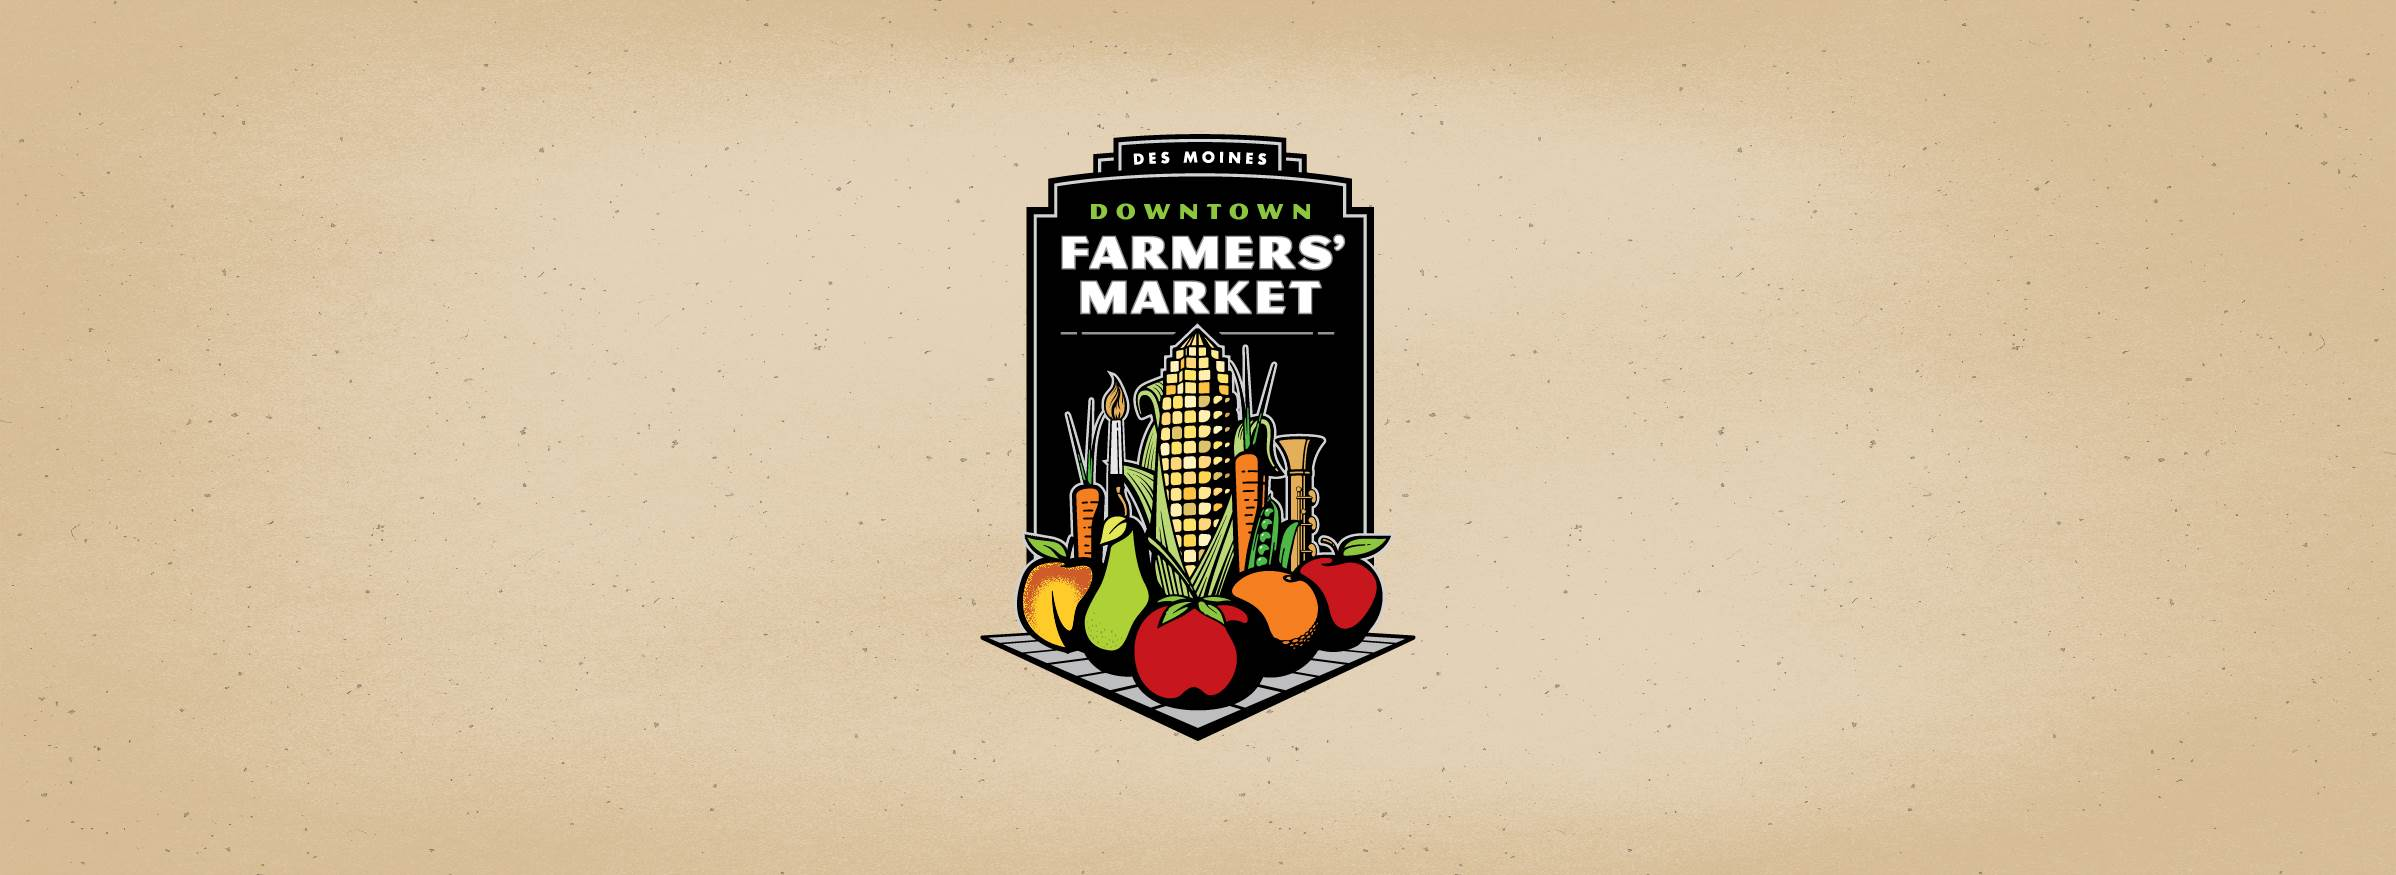 Downtown Farmers' Market Opening Day 2019